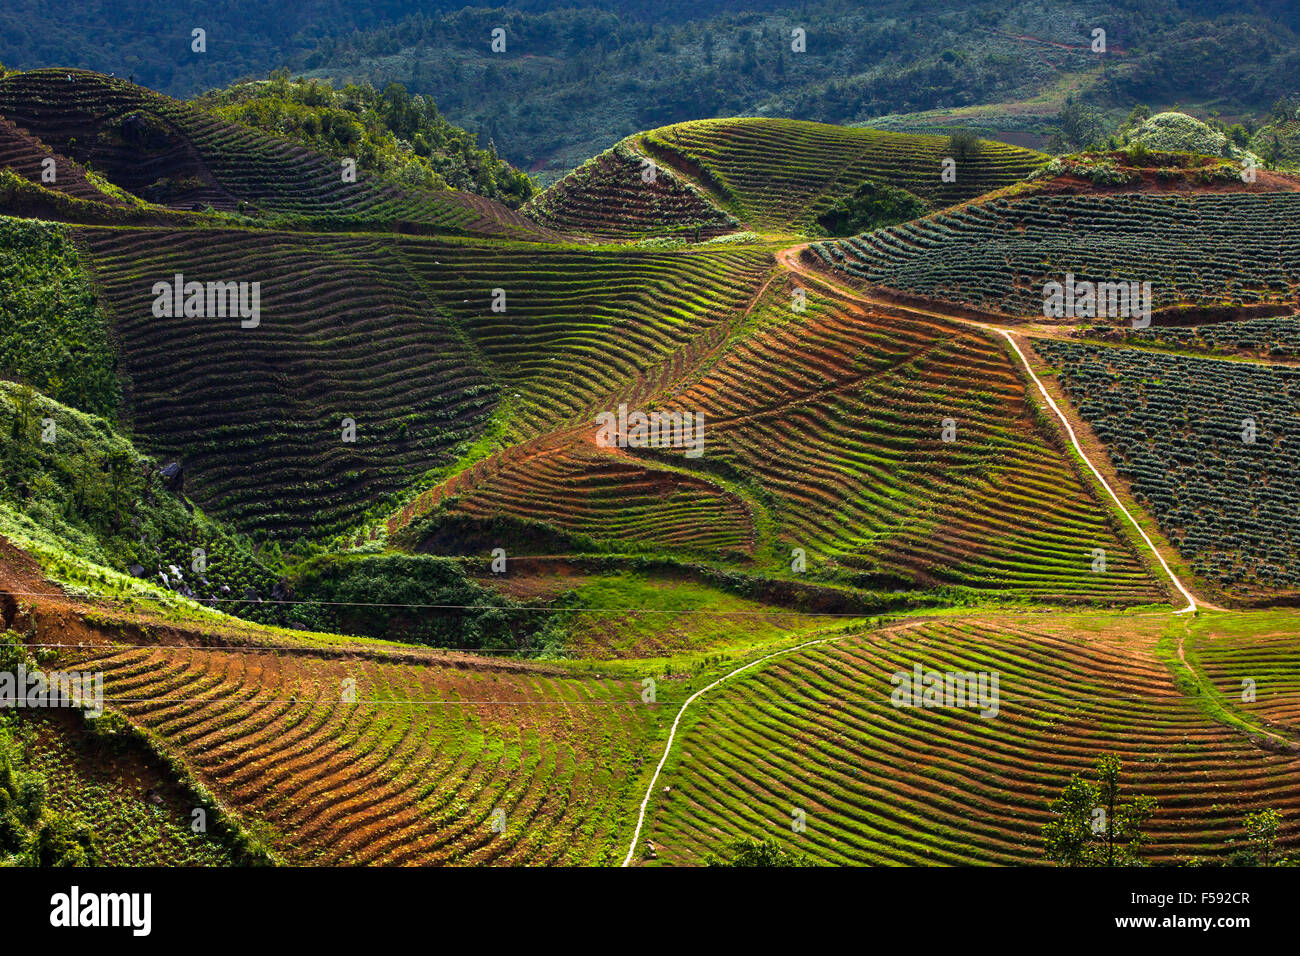 Fields in the mountains near Sapa village, Northern Vietnam. Stock Photo